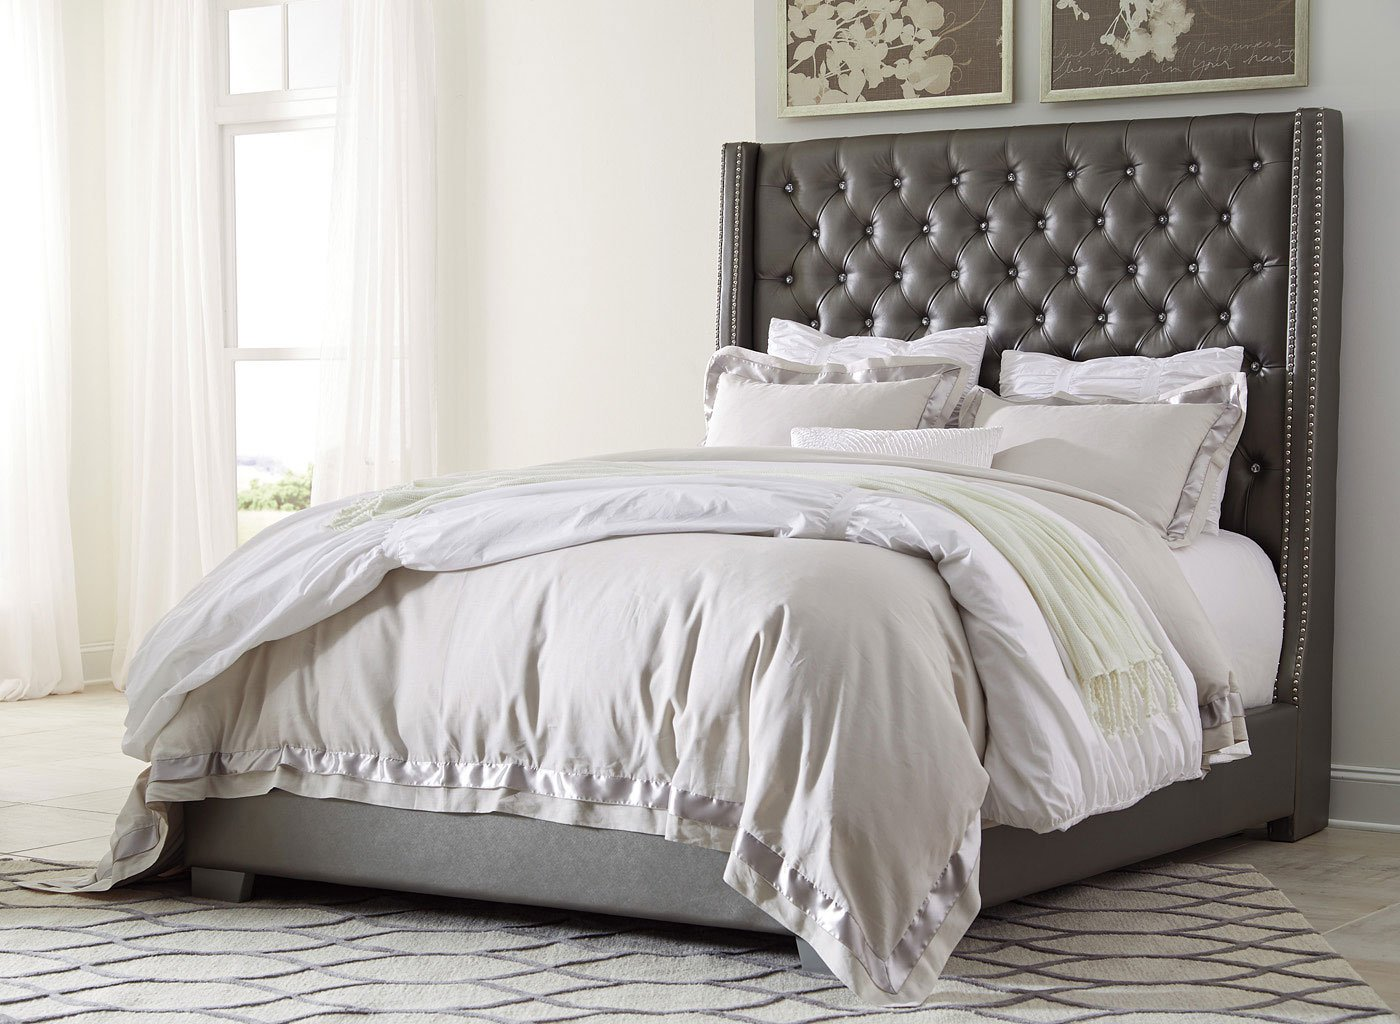 Coralayne upholstered bed beds bedroom furniture bedroom for Bedroom sets with upholstered headboards